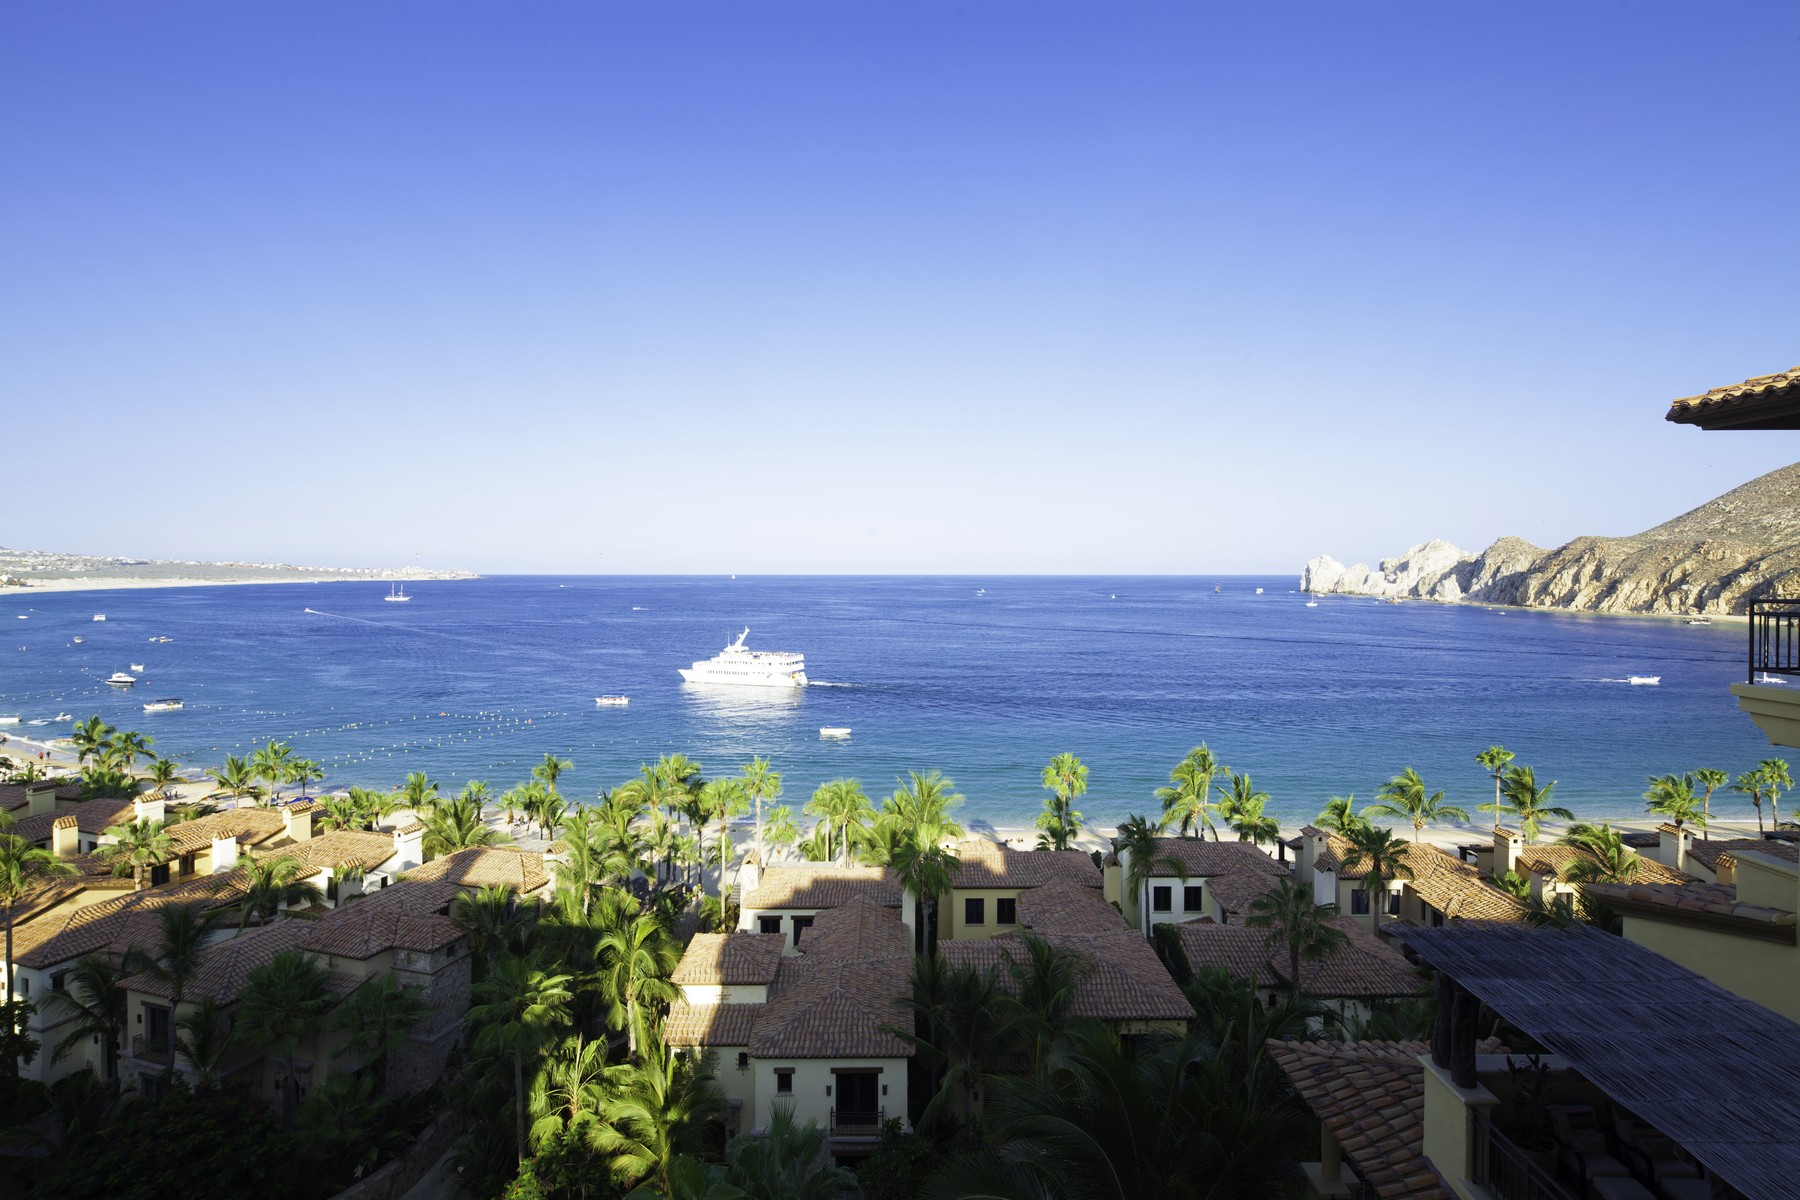 Condominium for Rent at Hacienda penthouse 4-601 Cabo San Lucas, Baja California Sur Mexico